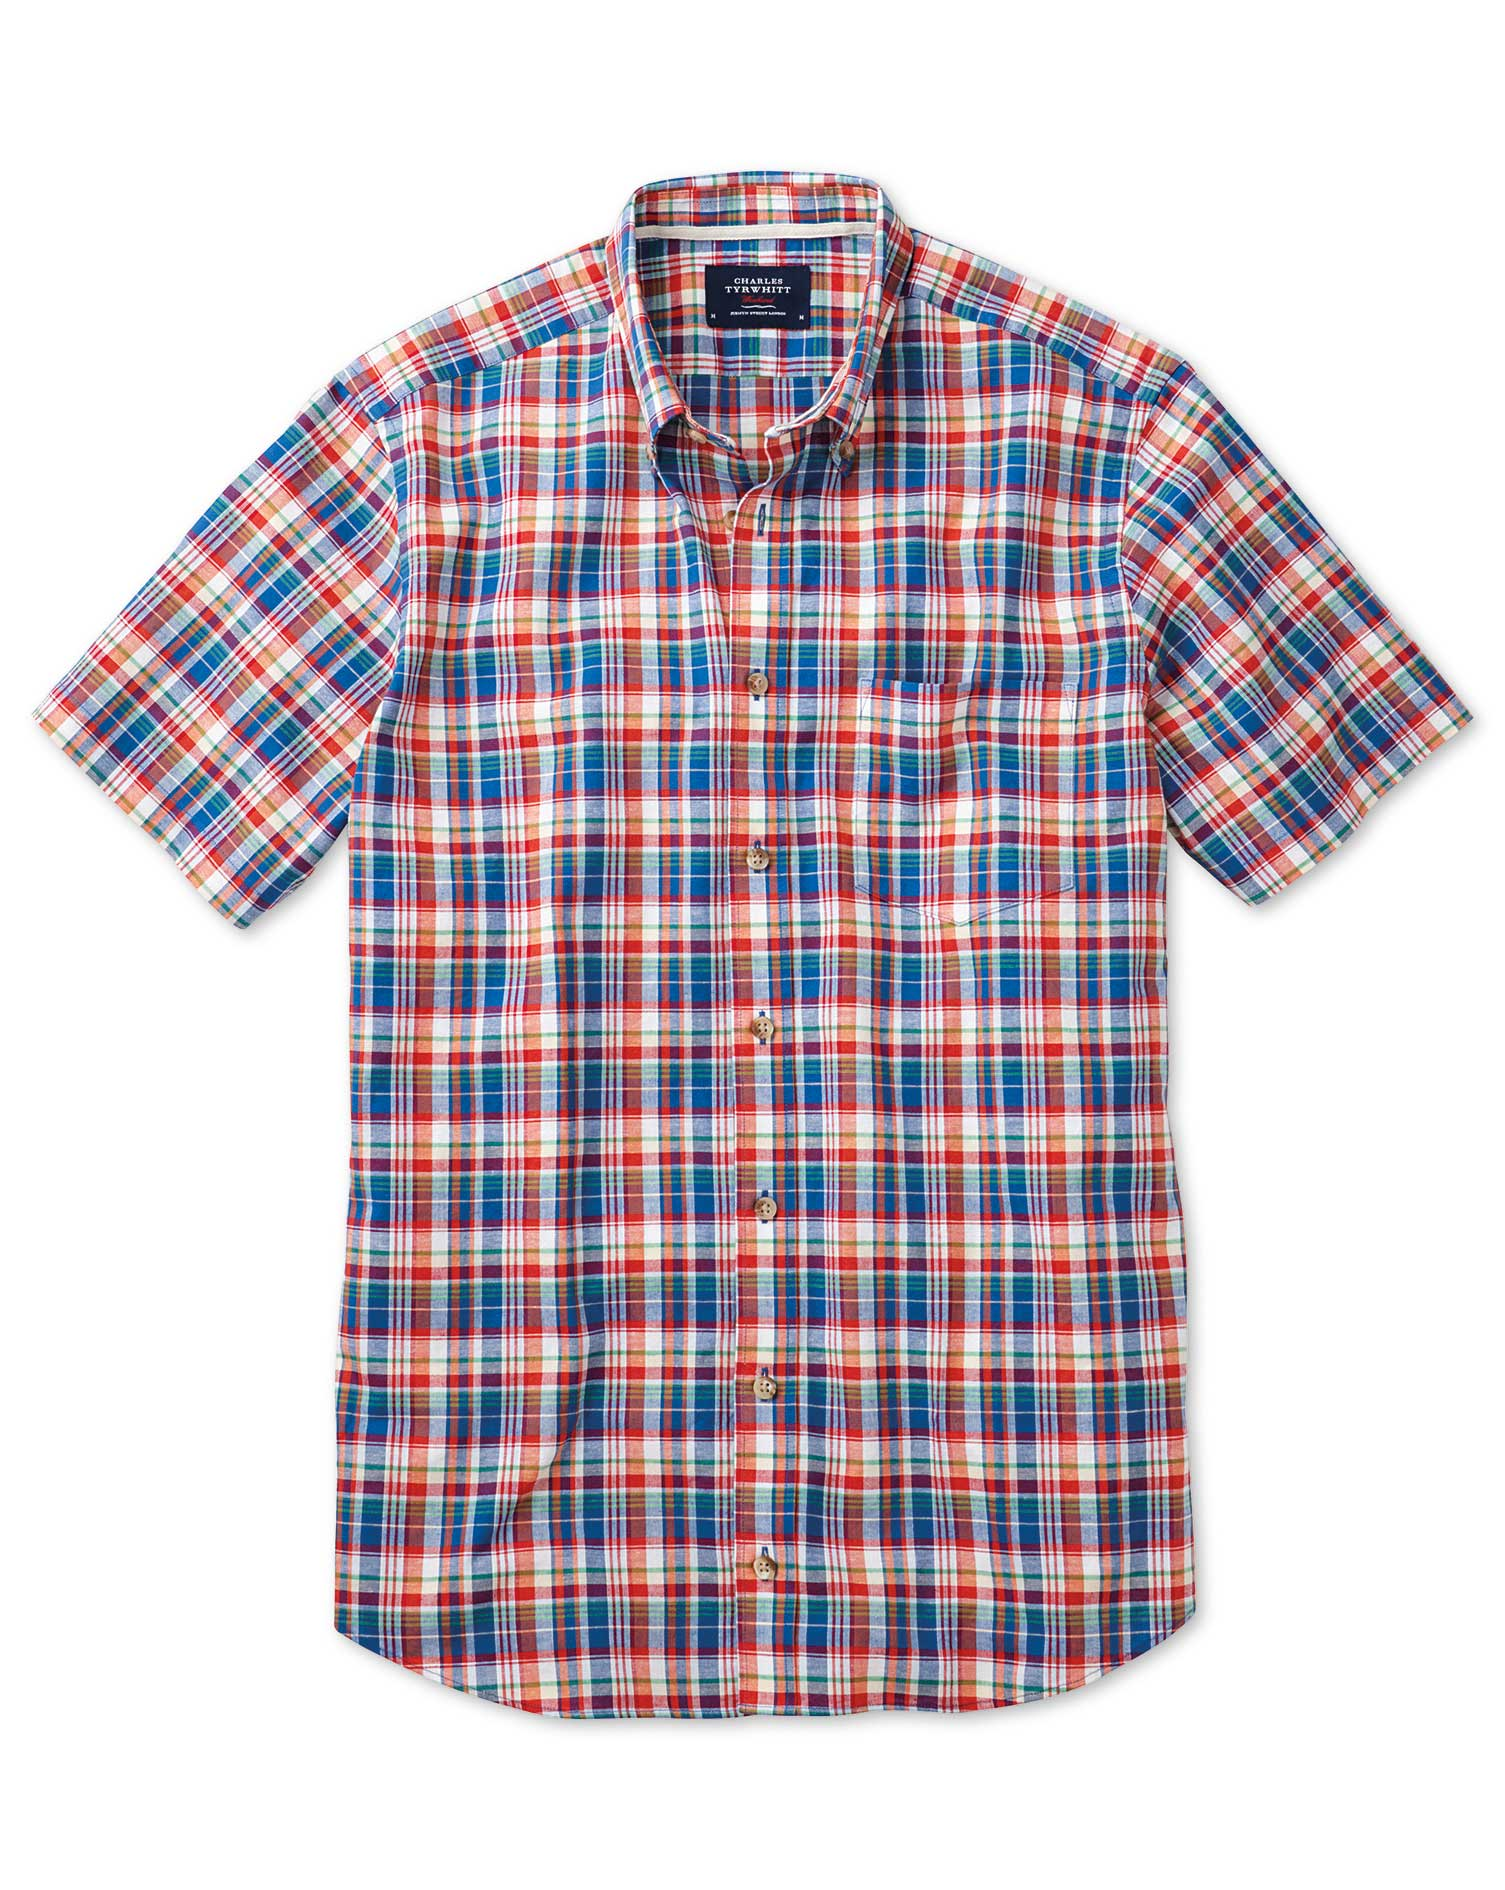 Slim Fit Short Sleeve Orange and Blue Check Shirt Single Cuff Size Small by Charles Tyrwhitt